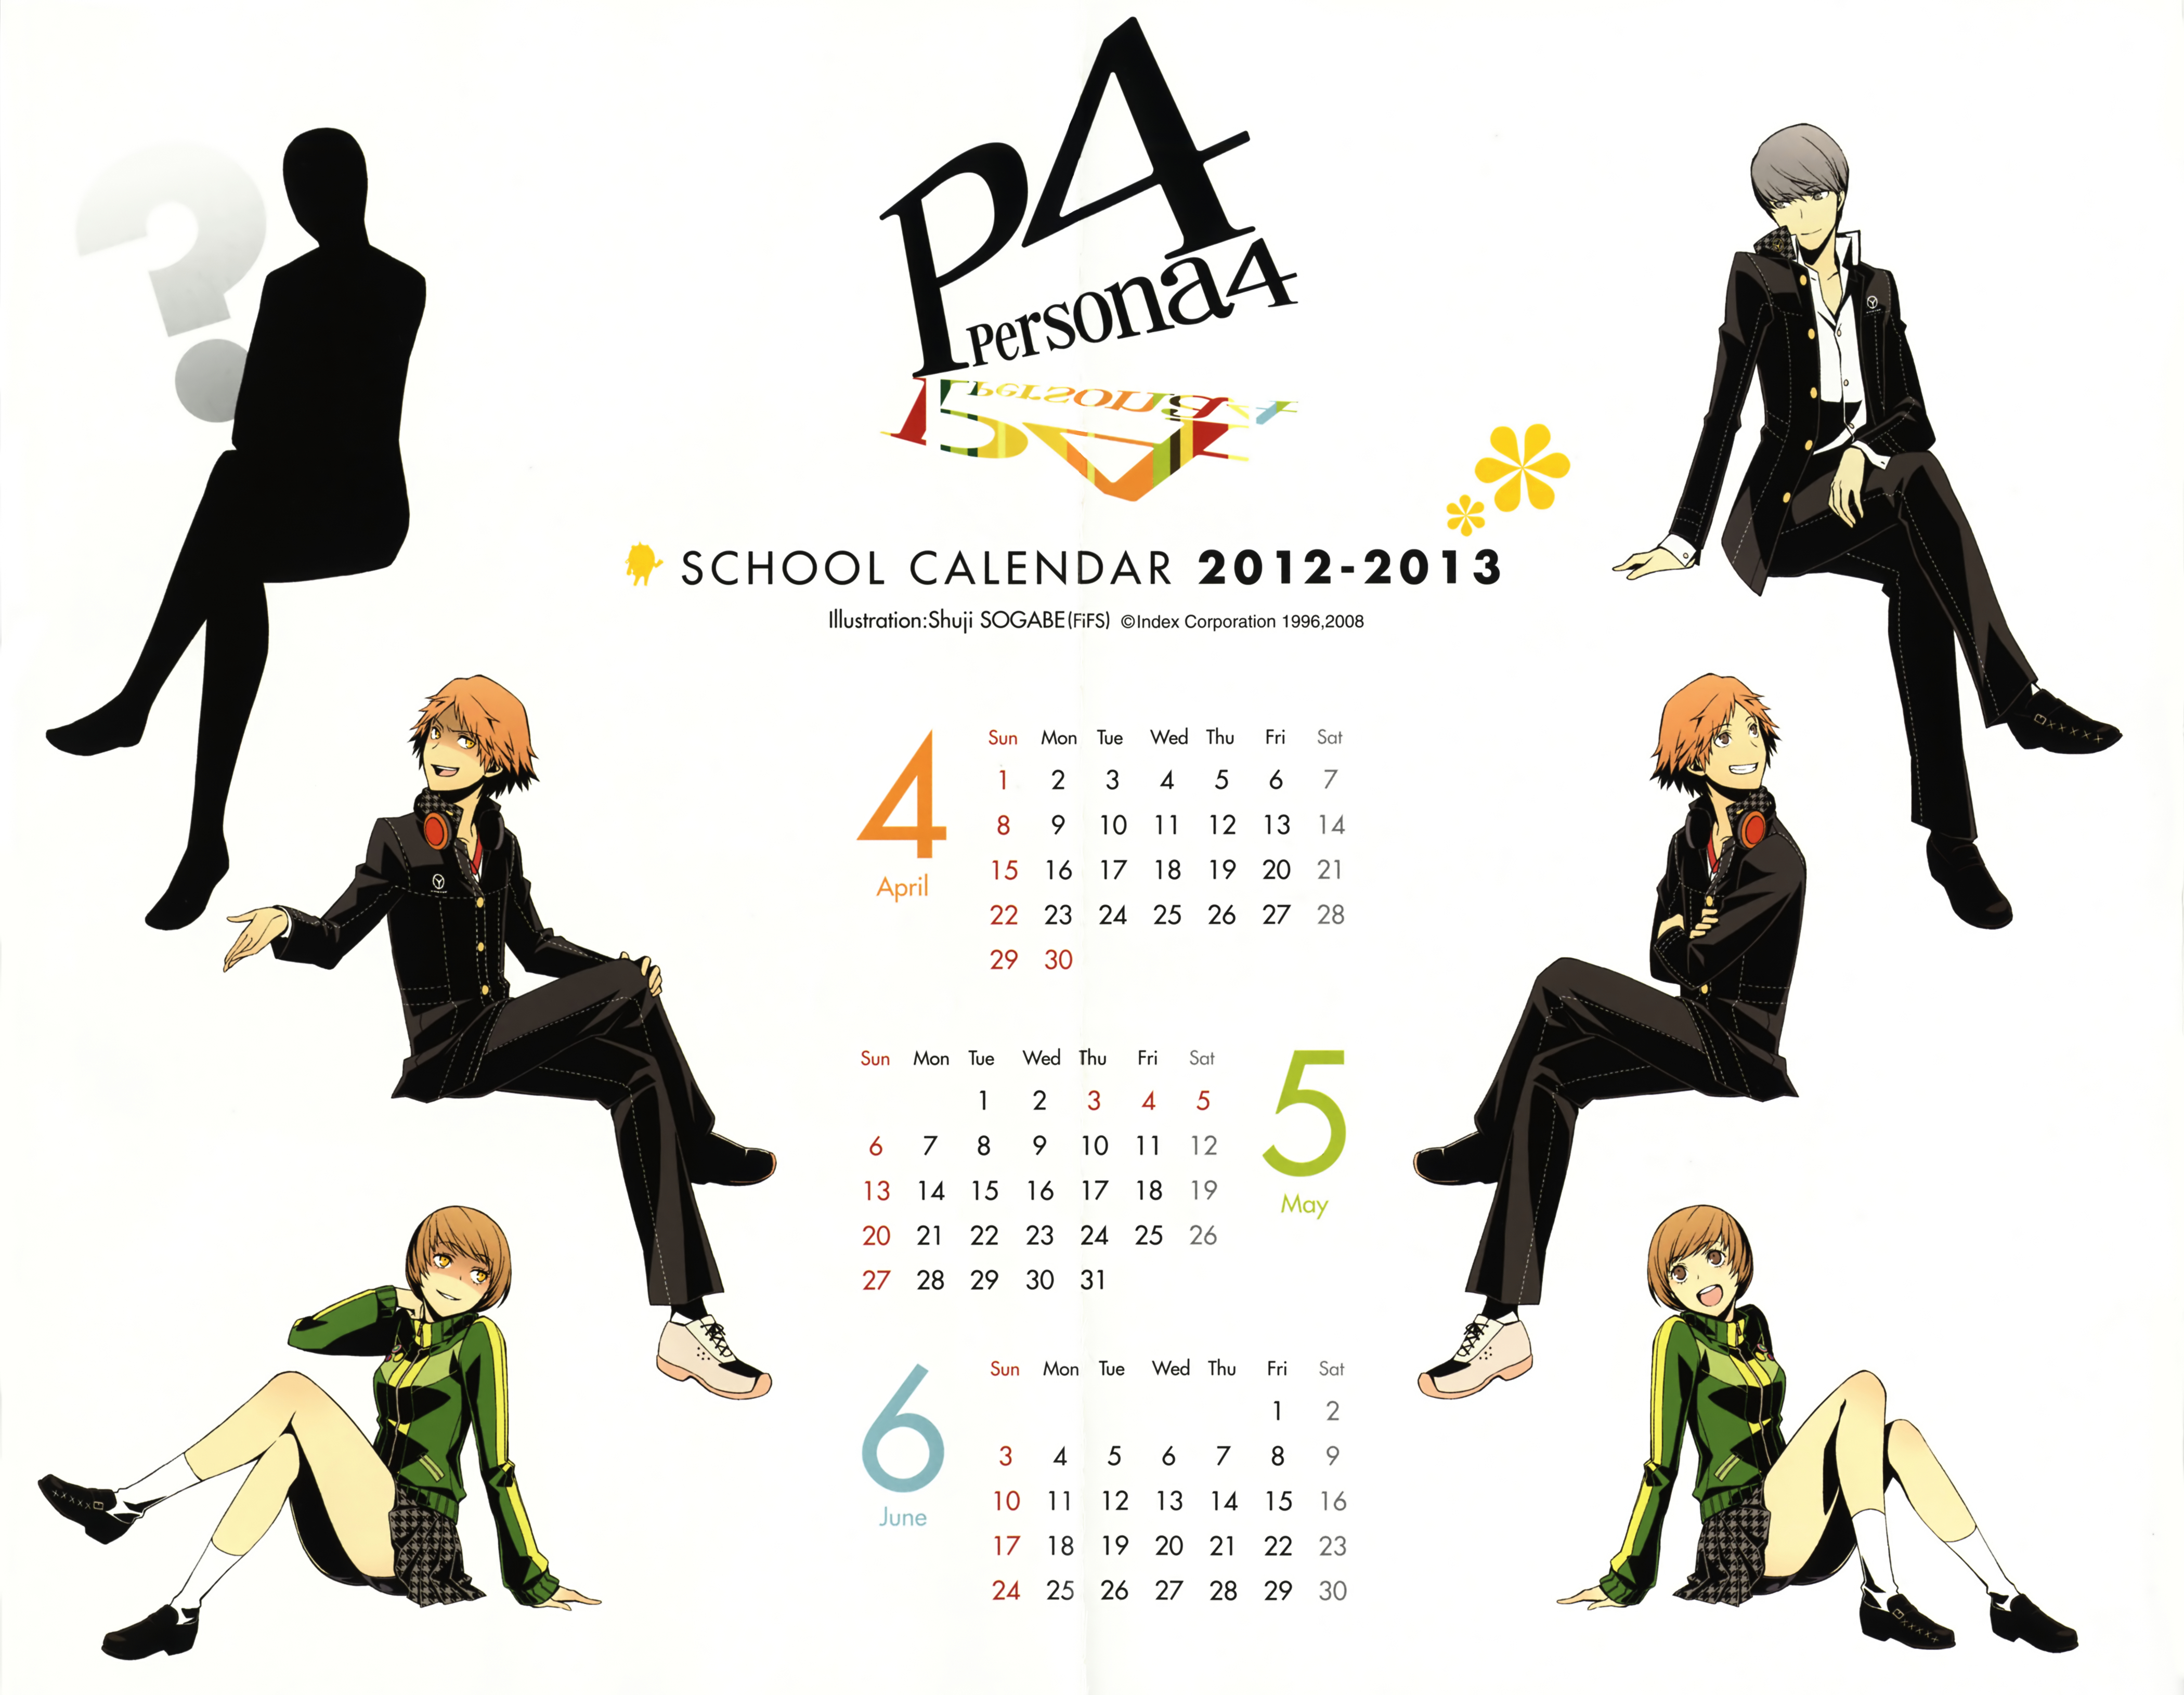 Dating chie persona 4